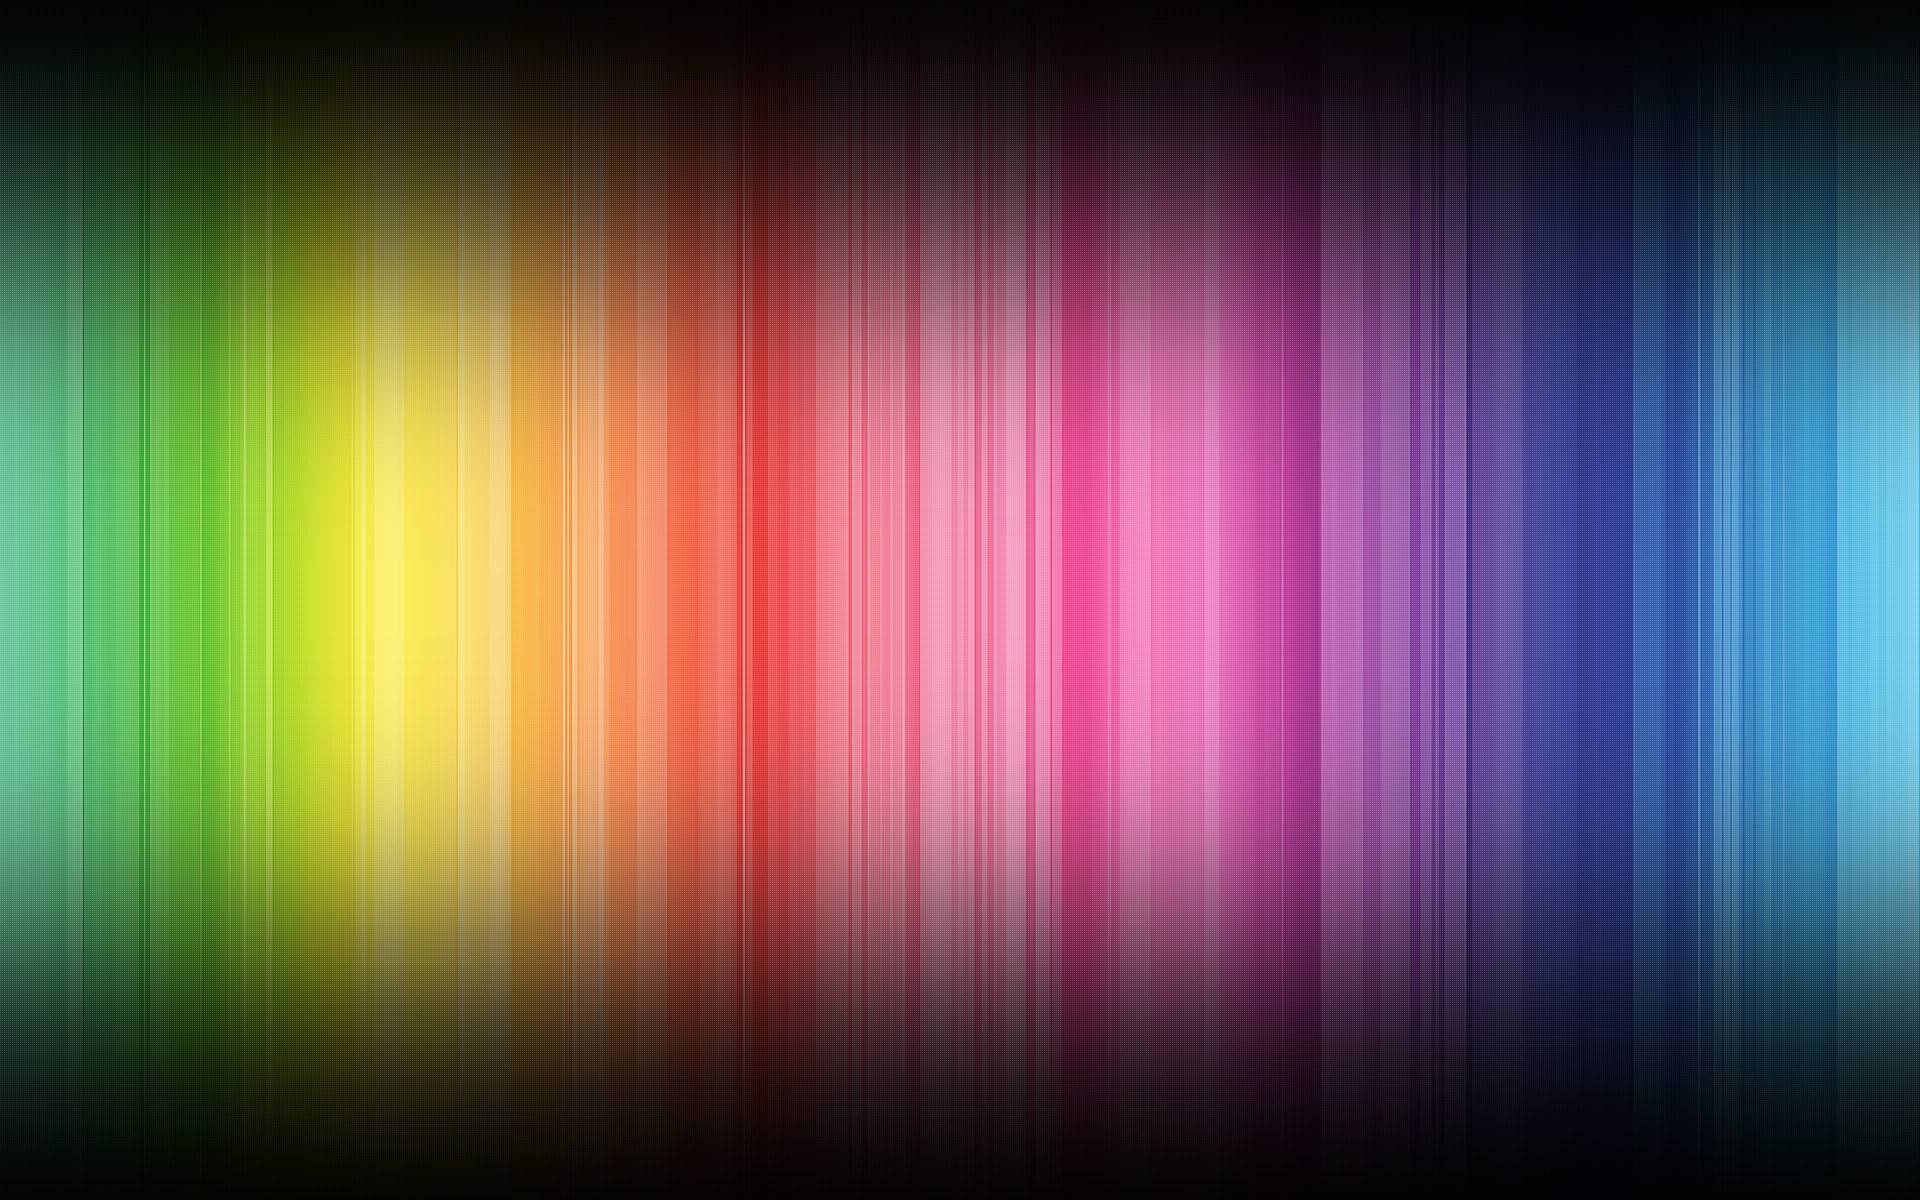 Wallpaper Dinding Garis Warna kertas dinding colourful garis garis warna pelangi